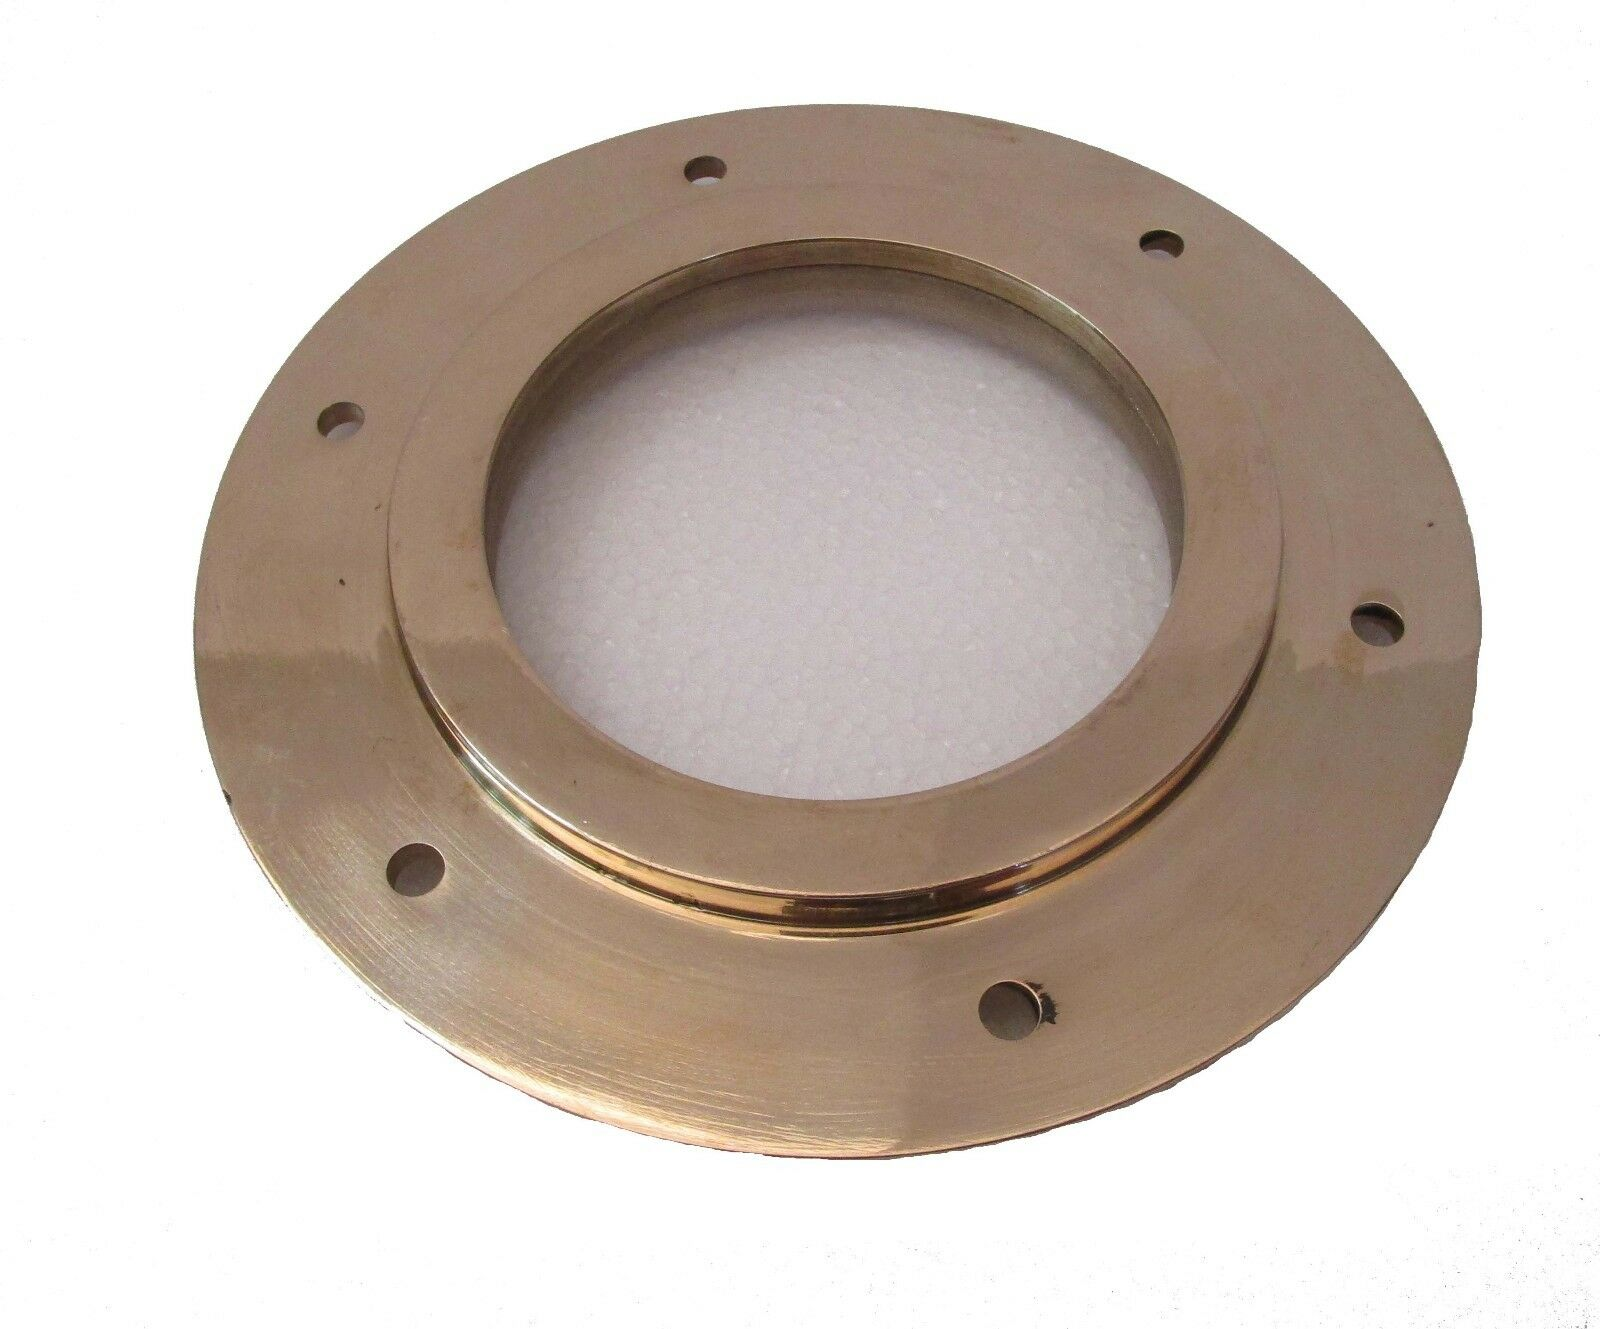 Marine BRASS PORT HOLE   Window   Porthole - 4 INCHES - TOUGHENED GLASS (5225)